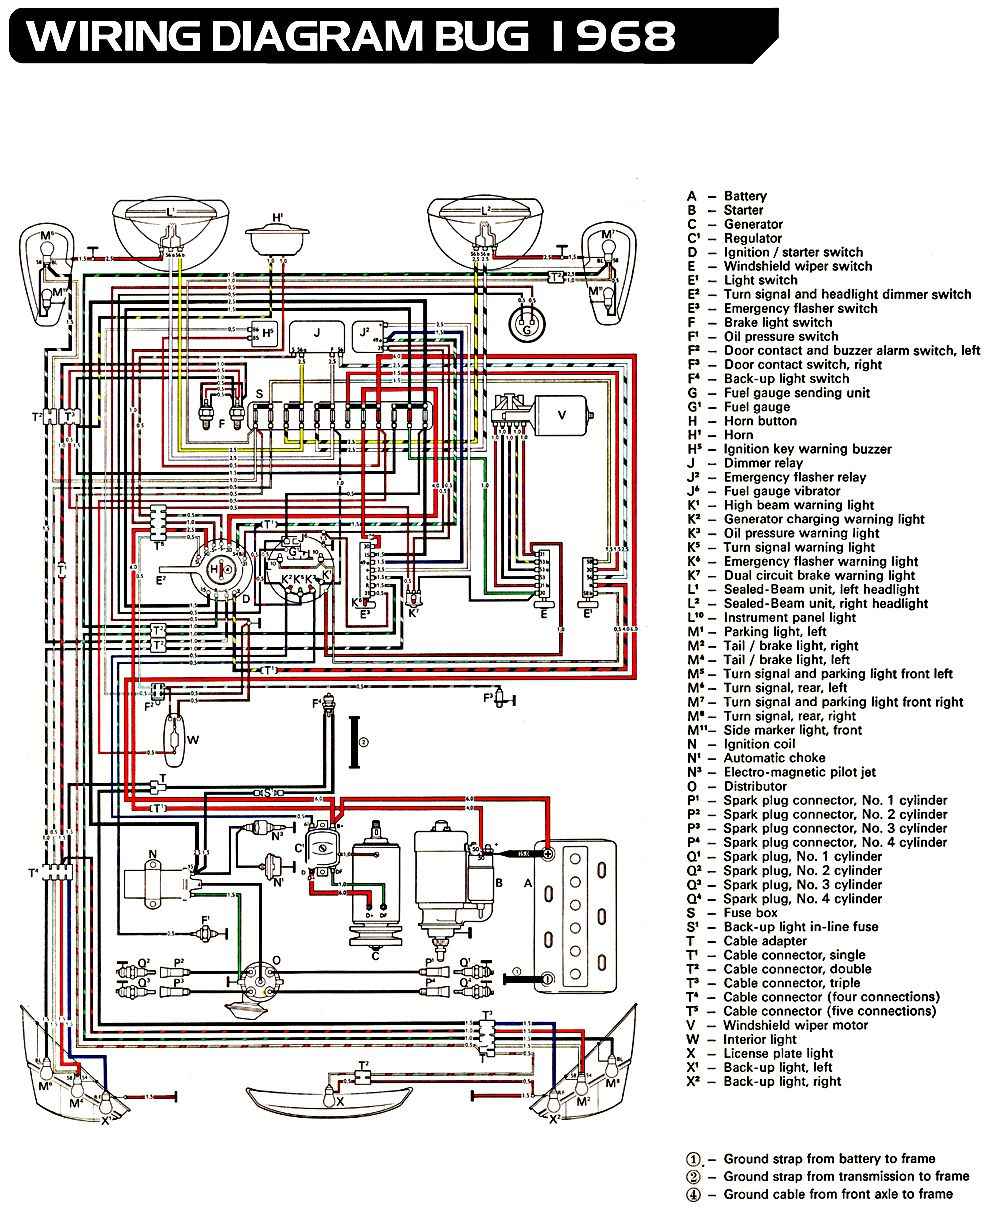 1998 vw beetle wiring harness wiring diagram expert 1998 vw beetle wiring harness [ 996 x 1211 Pixel ]